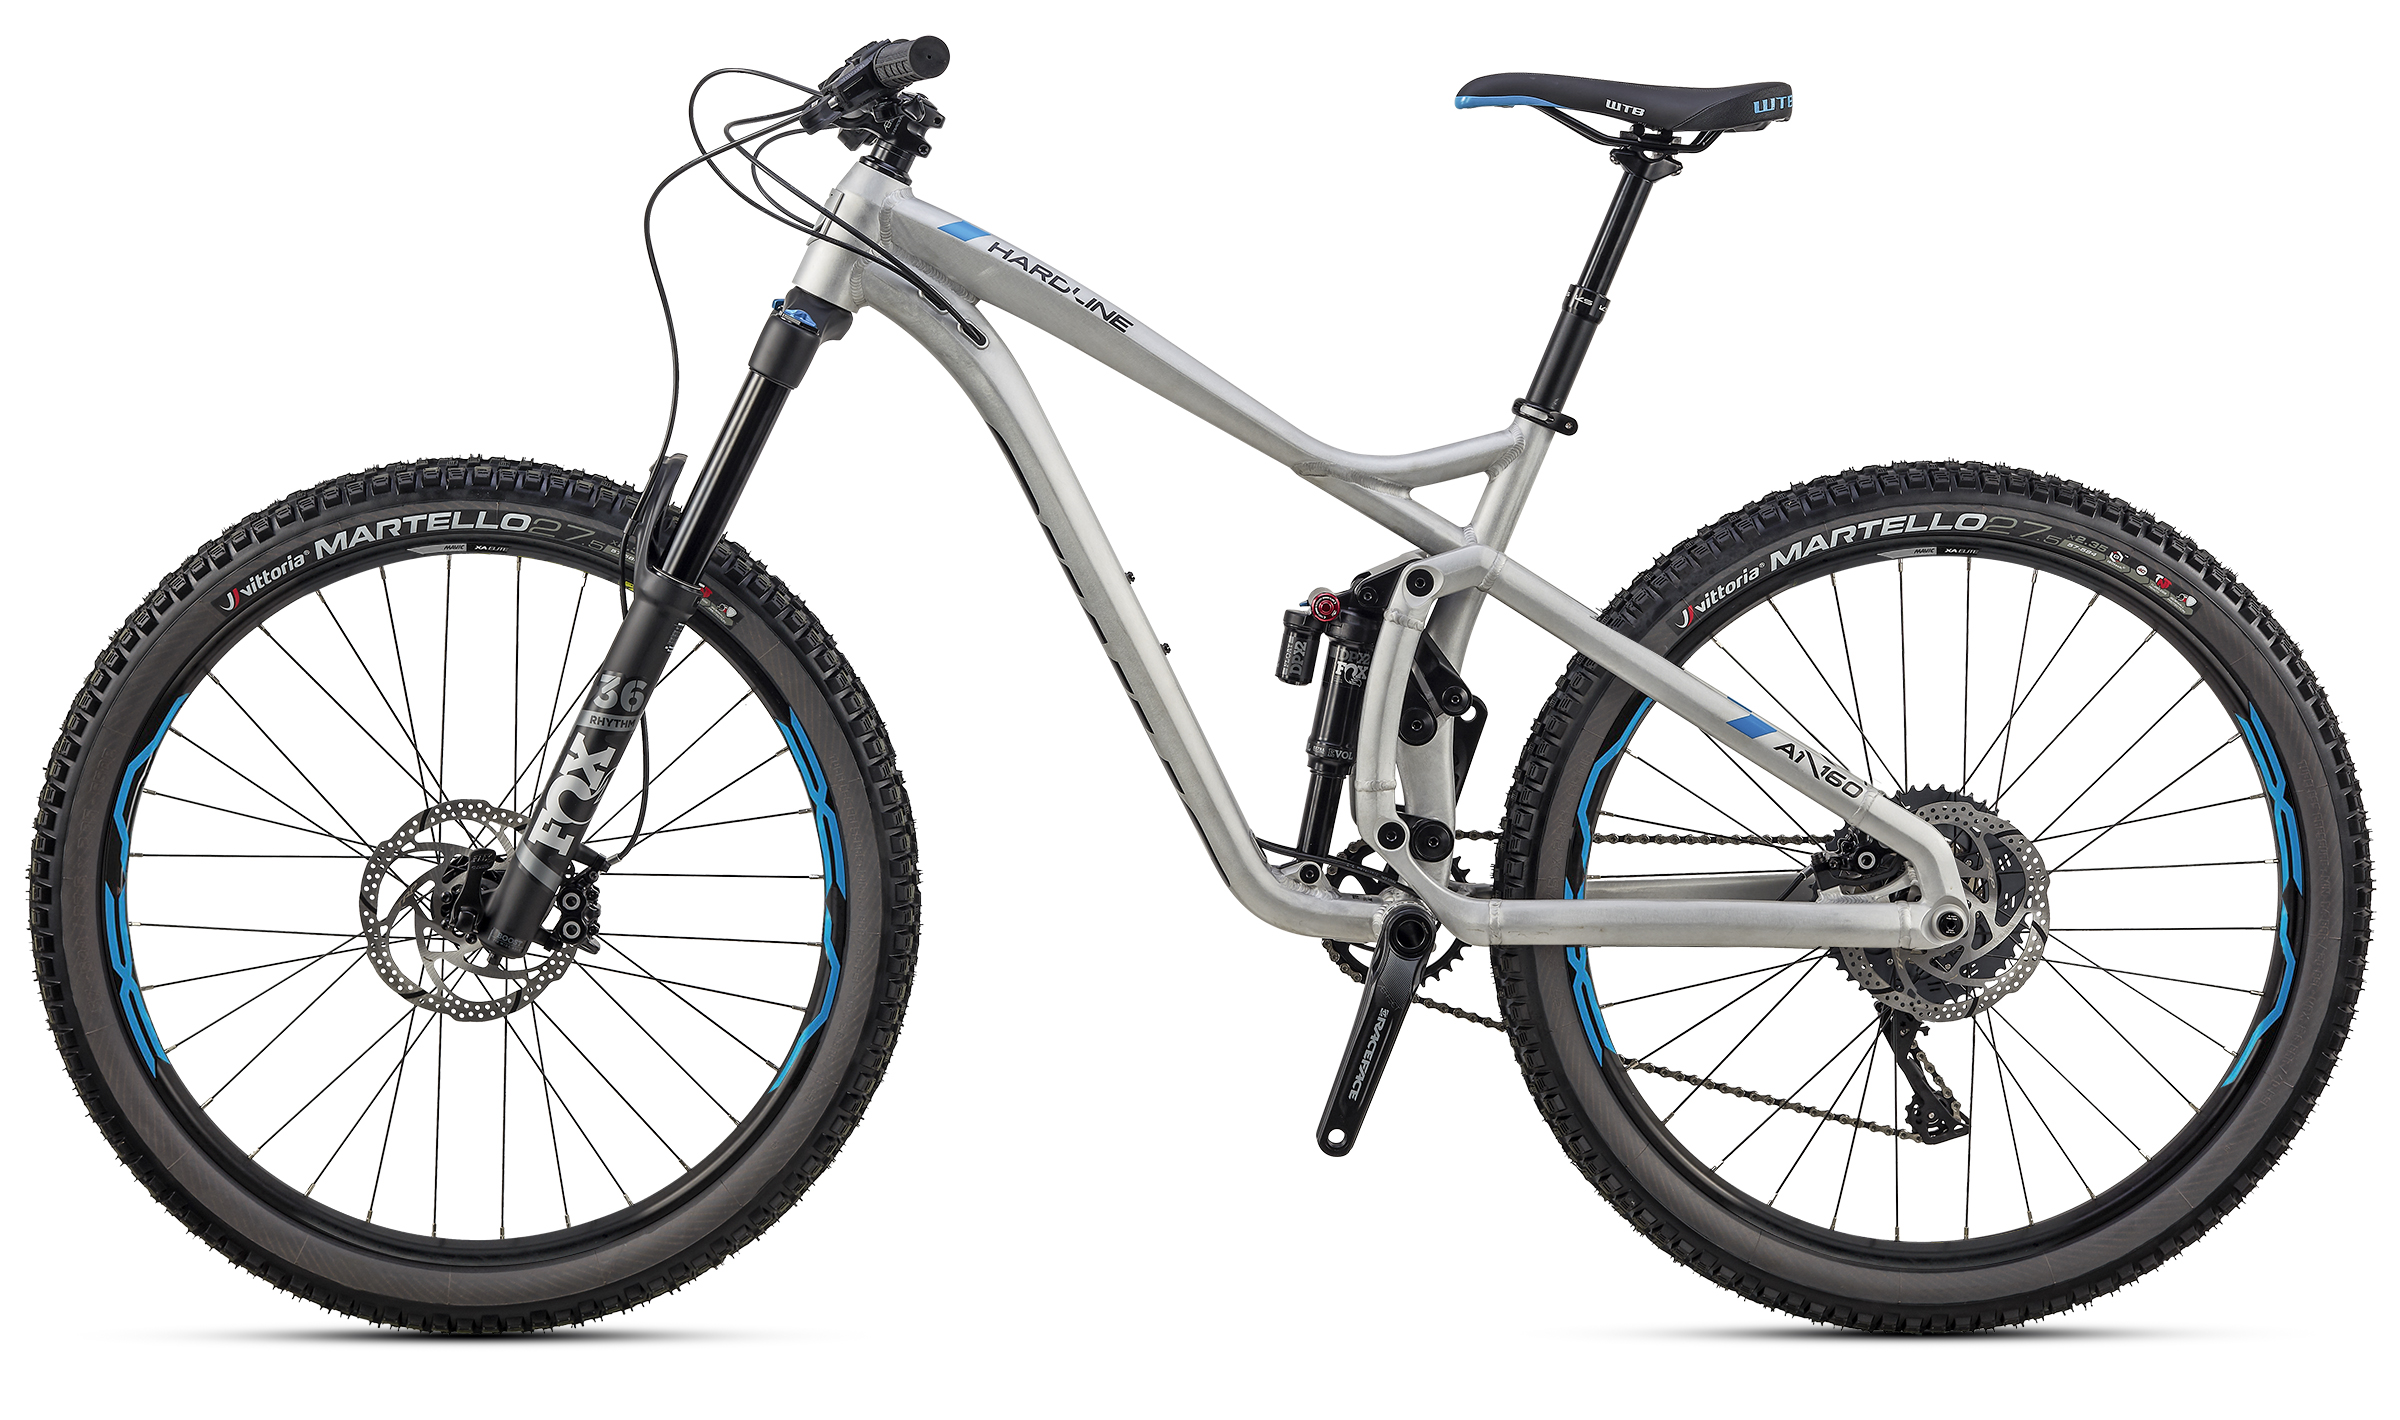 Jamis heads to Sea Otter with all new 3VO Suspension design from Chris Currie